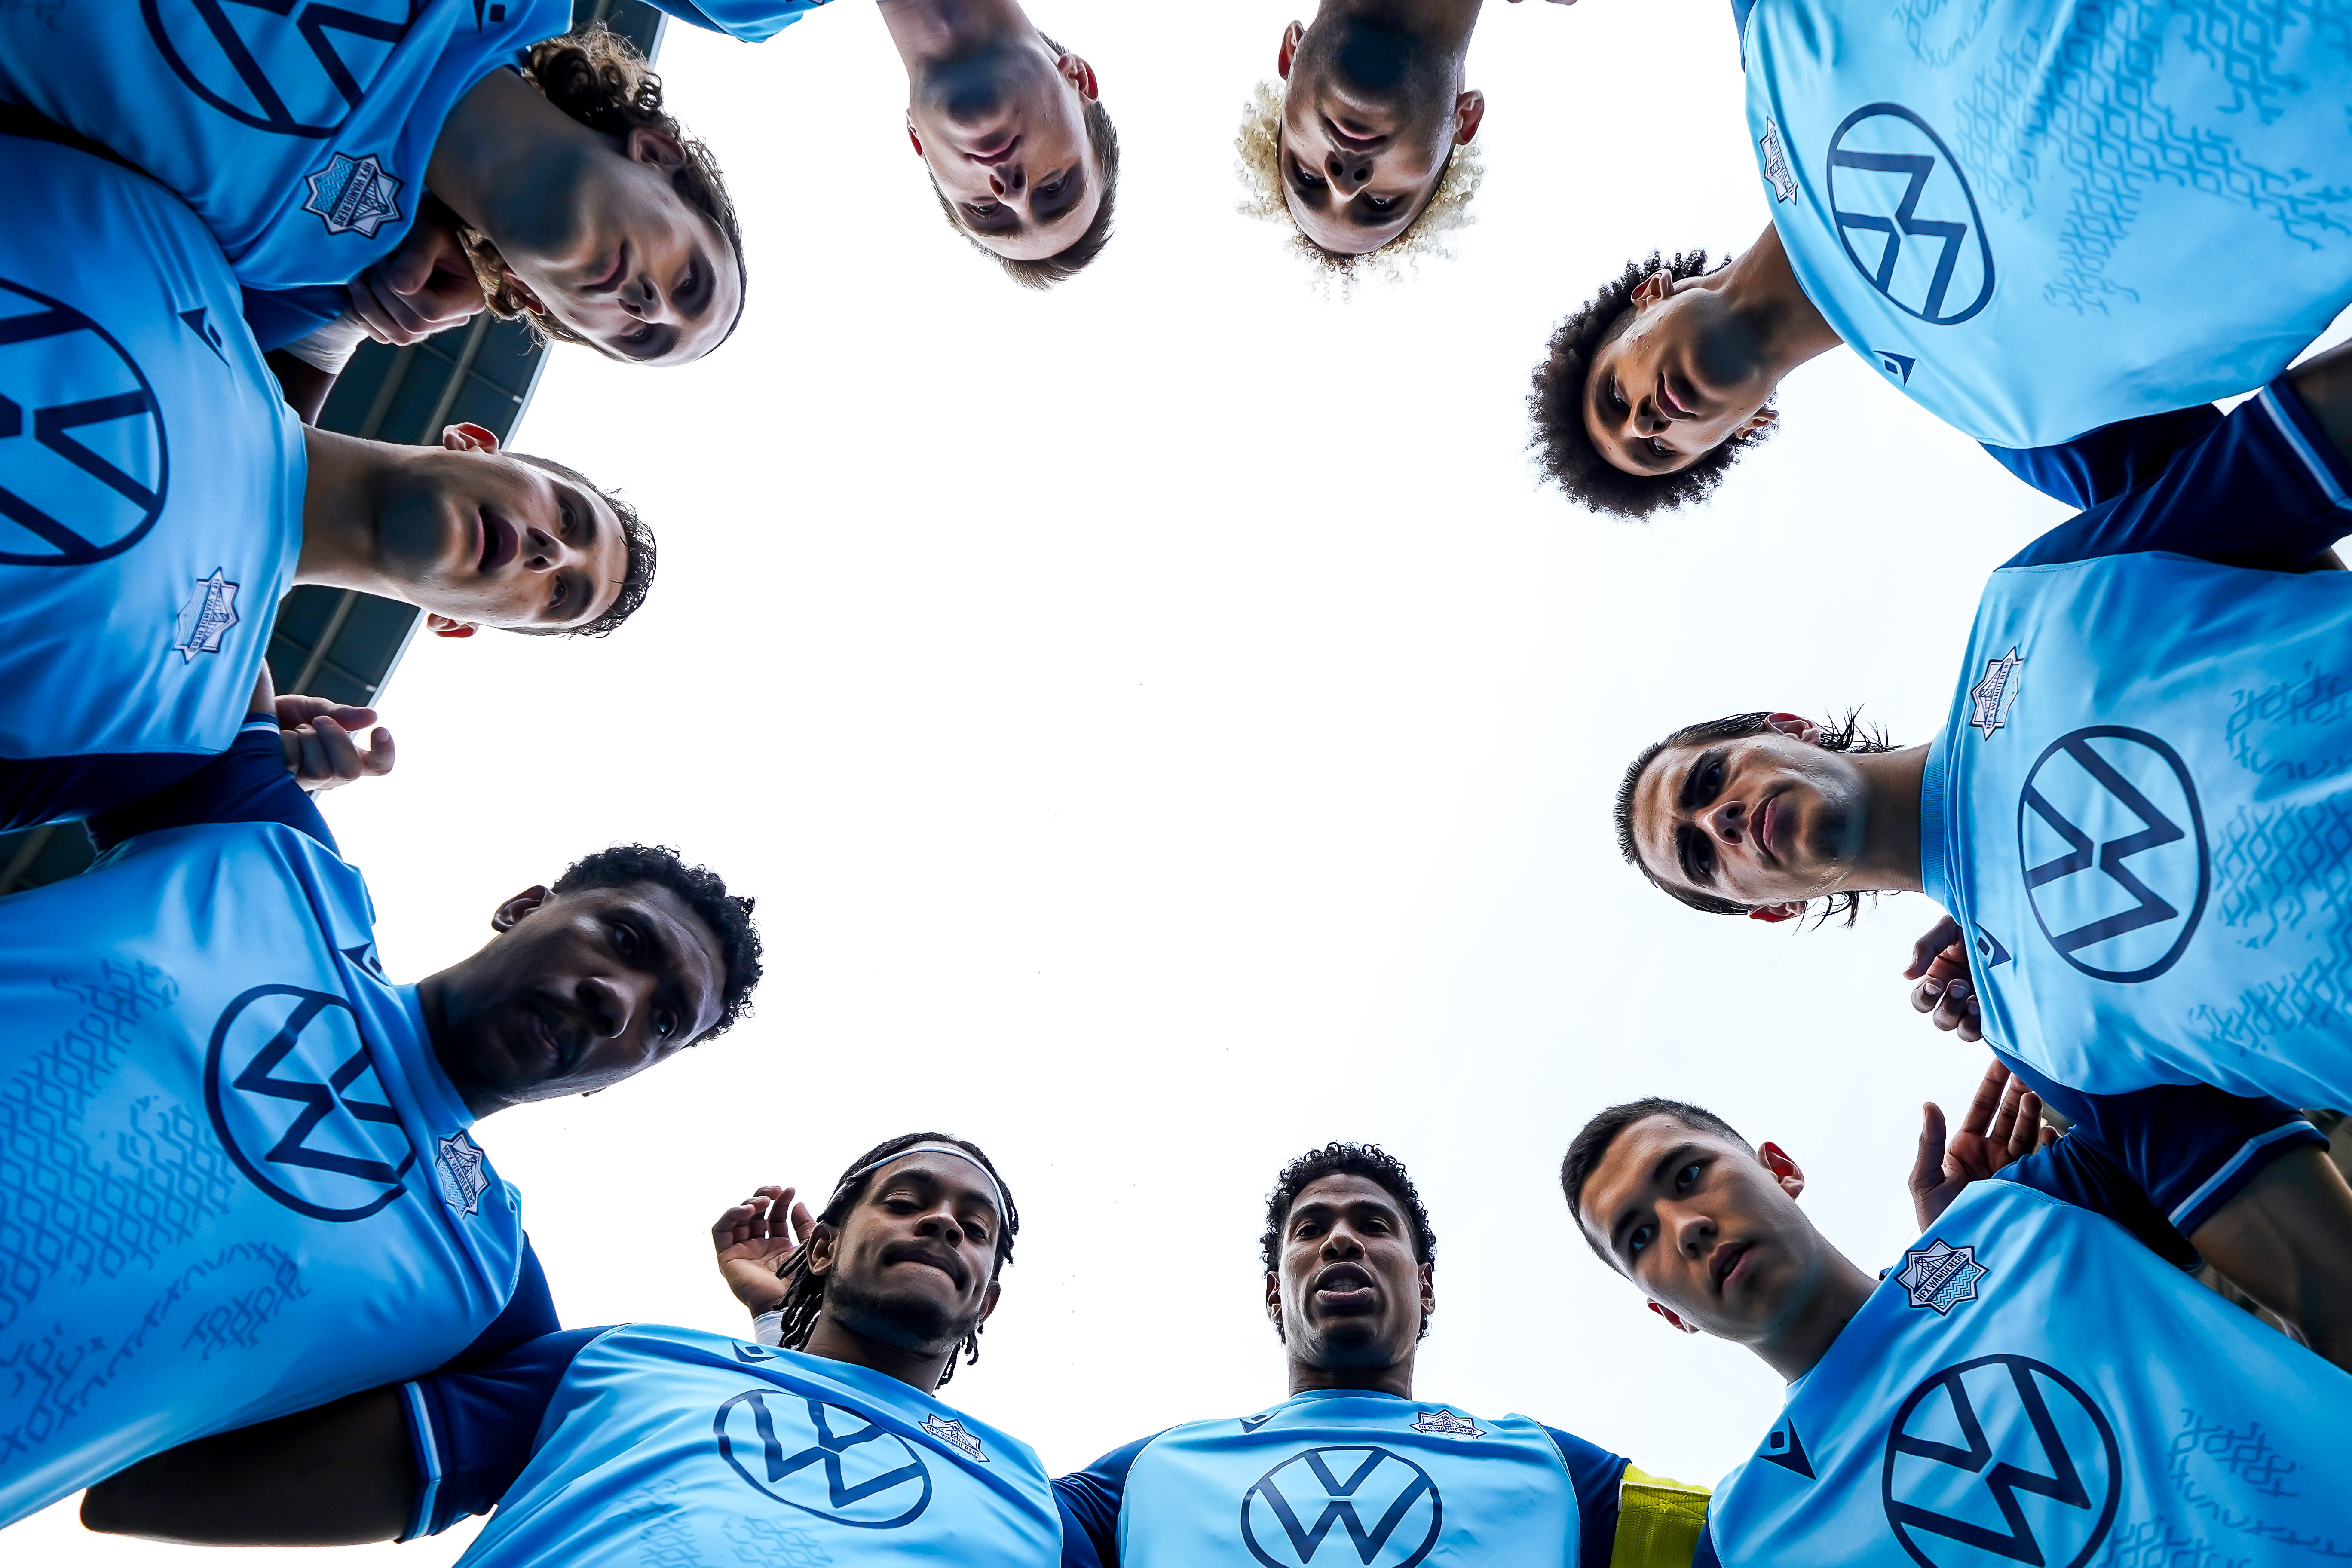 July 17, 2021. HFX Wanderers FC vs Cavalry FC. Pre-Game. HFX Wanderers FC huddle up prior to the start of the match.